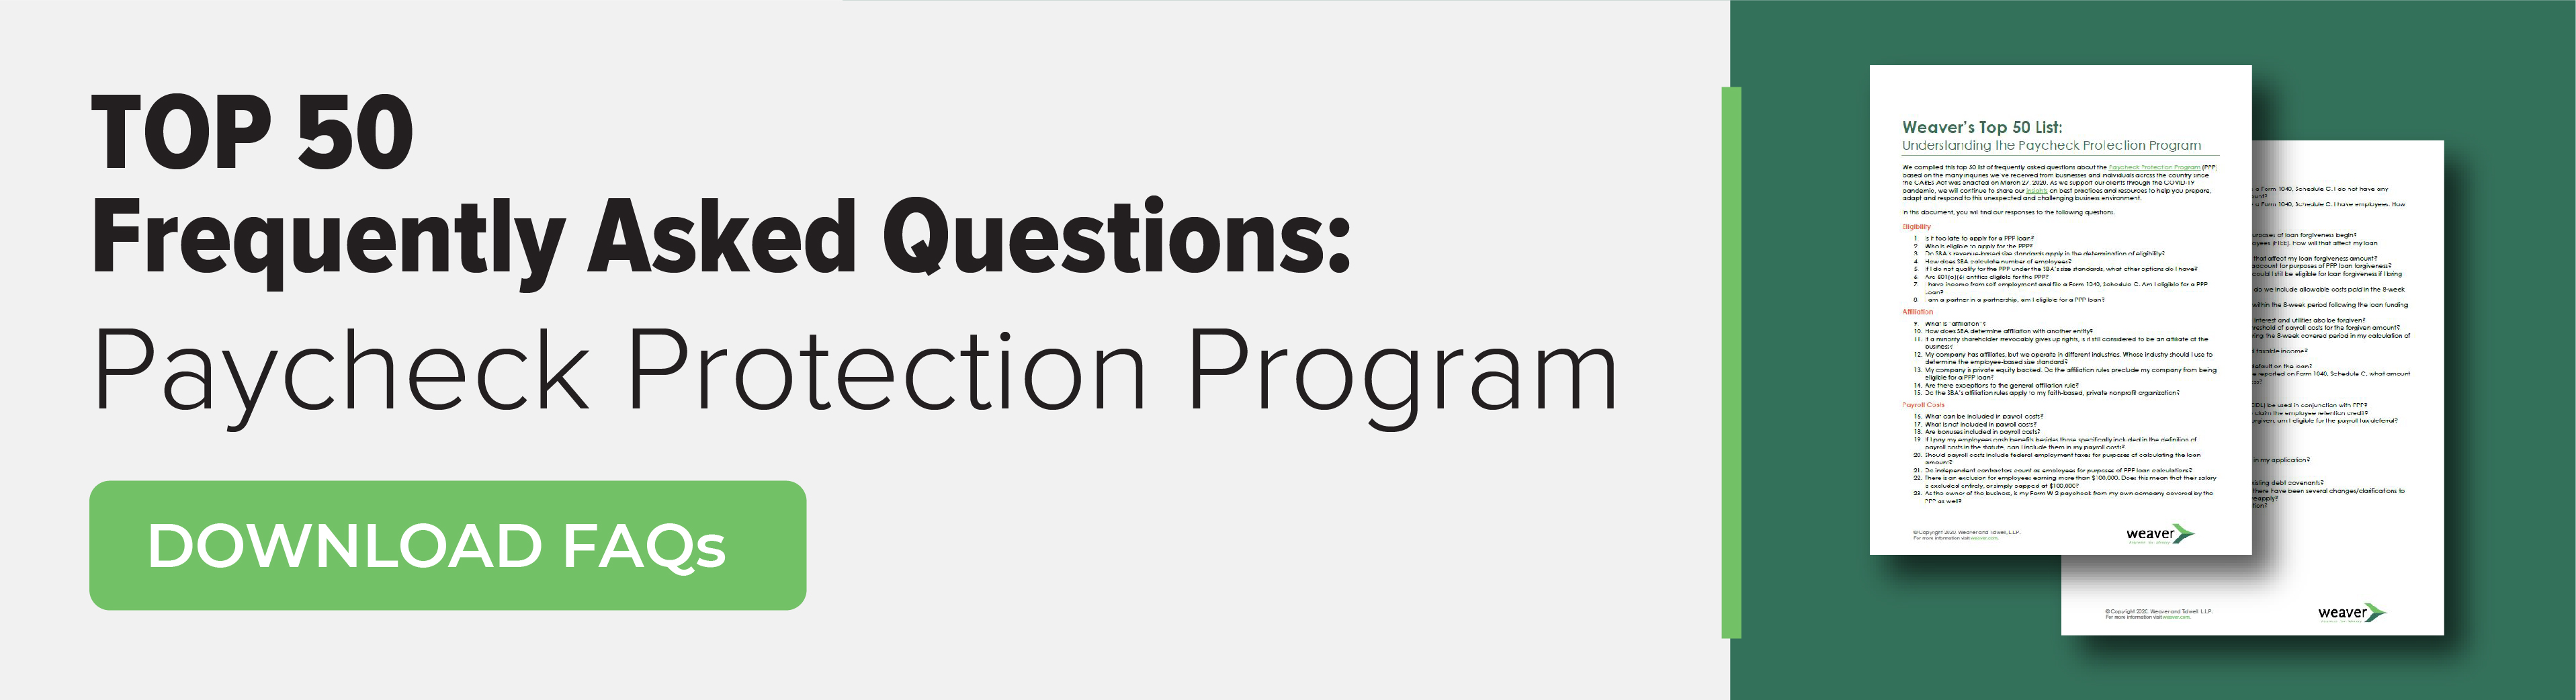 Top 50 Frequently Asked Questions for Paycheck Protection Program